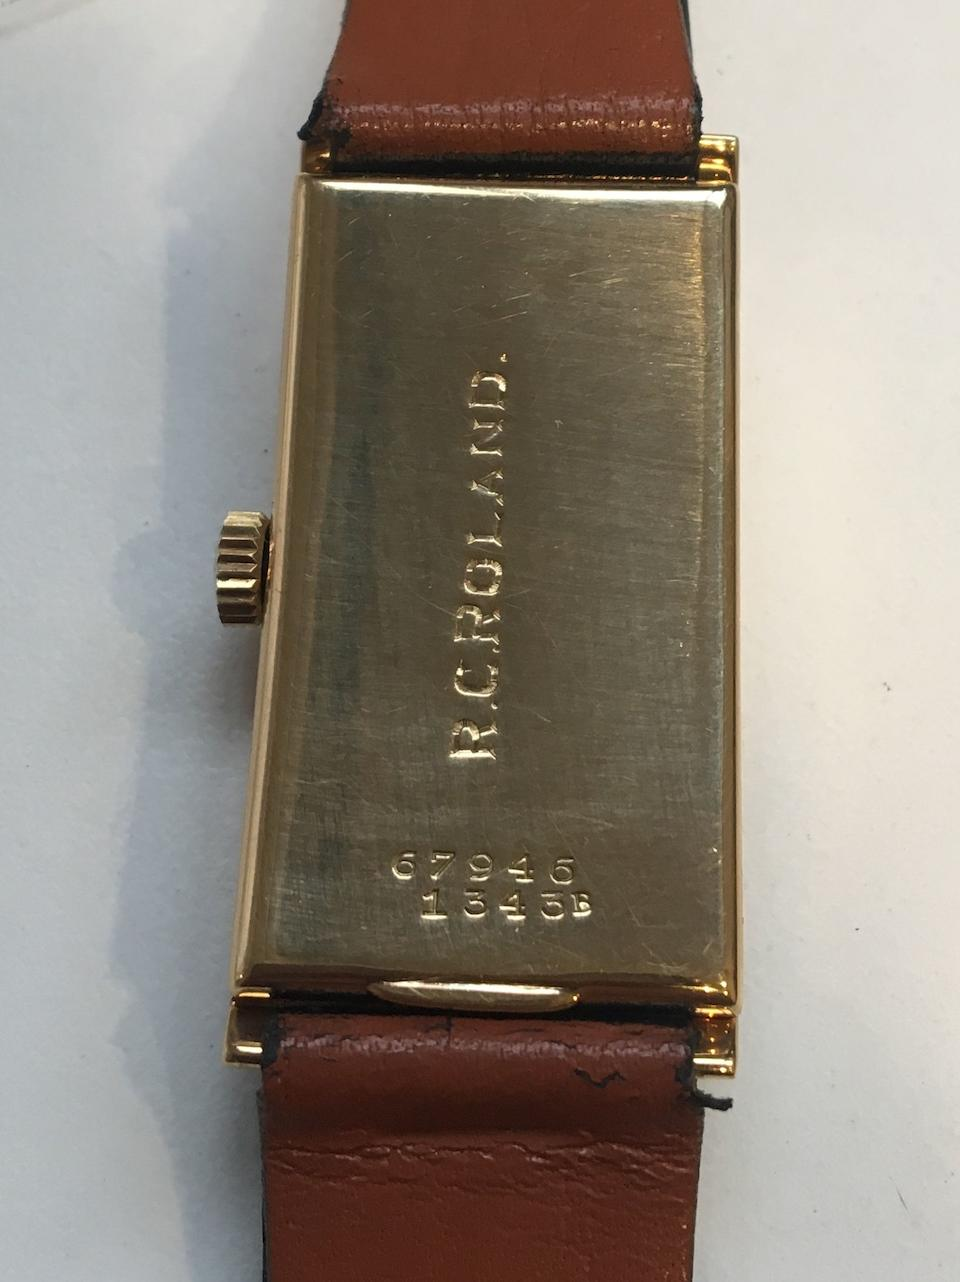 Rolex. A fine 18K striped white and yellow gold manual wind rectangular wristwatch  Prince 'Tiger Stripe', Ref: 1343B, Glasgow Import mark for 1929